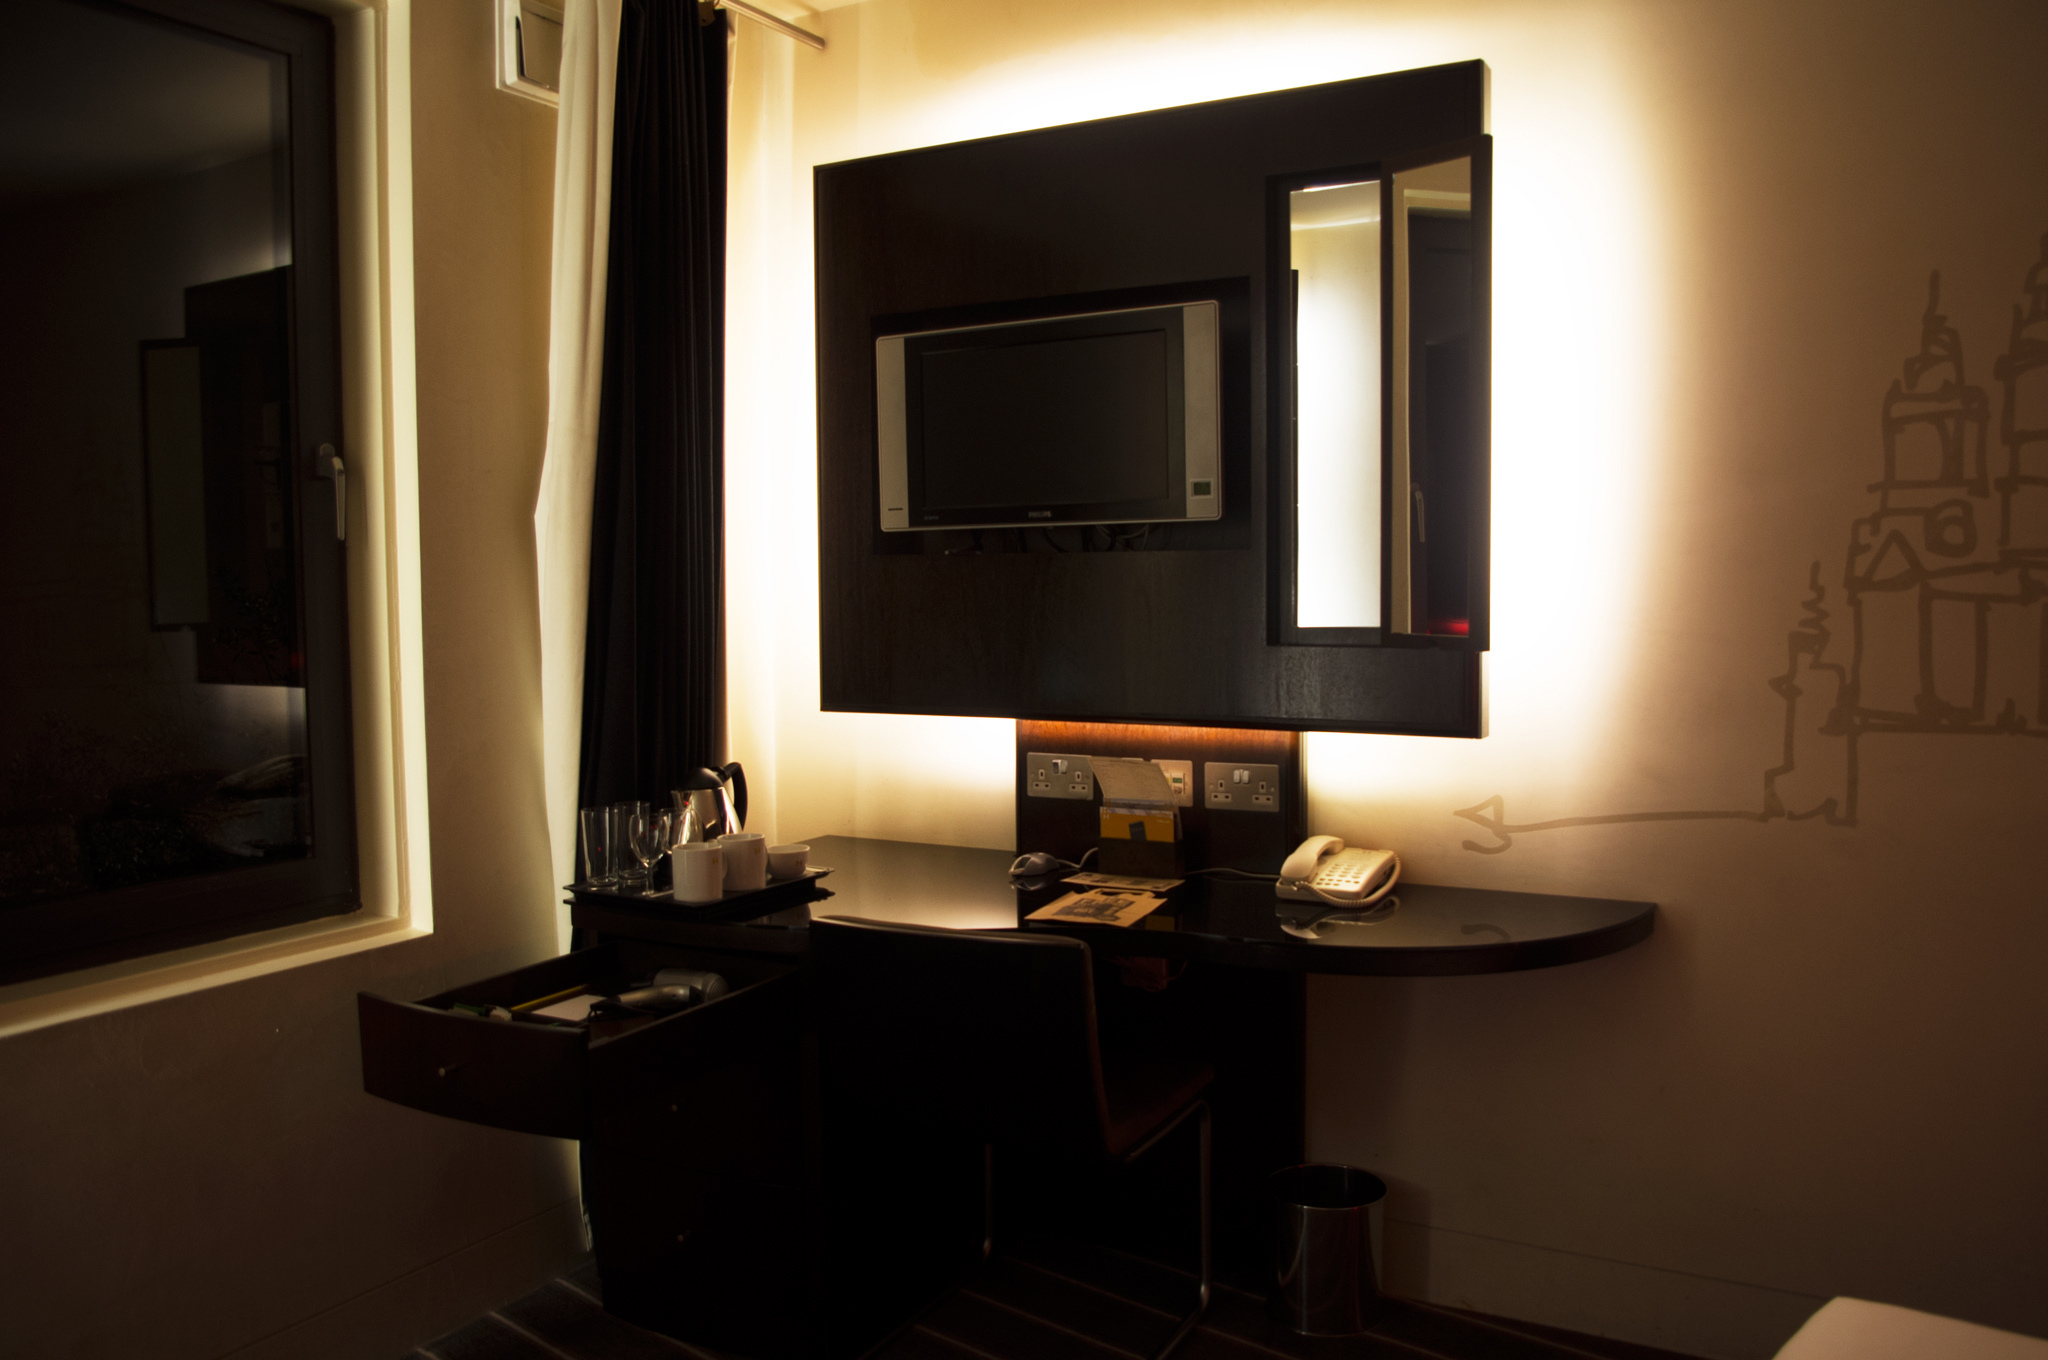 Room at the Hoxton Hotel in London. Photo by alphacityguides.